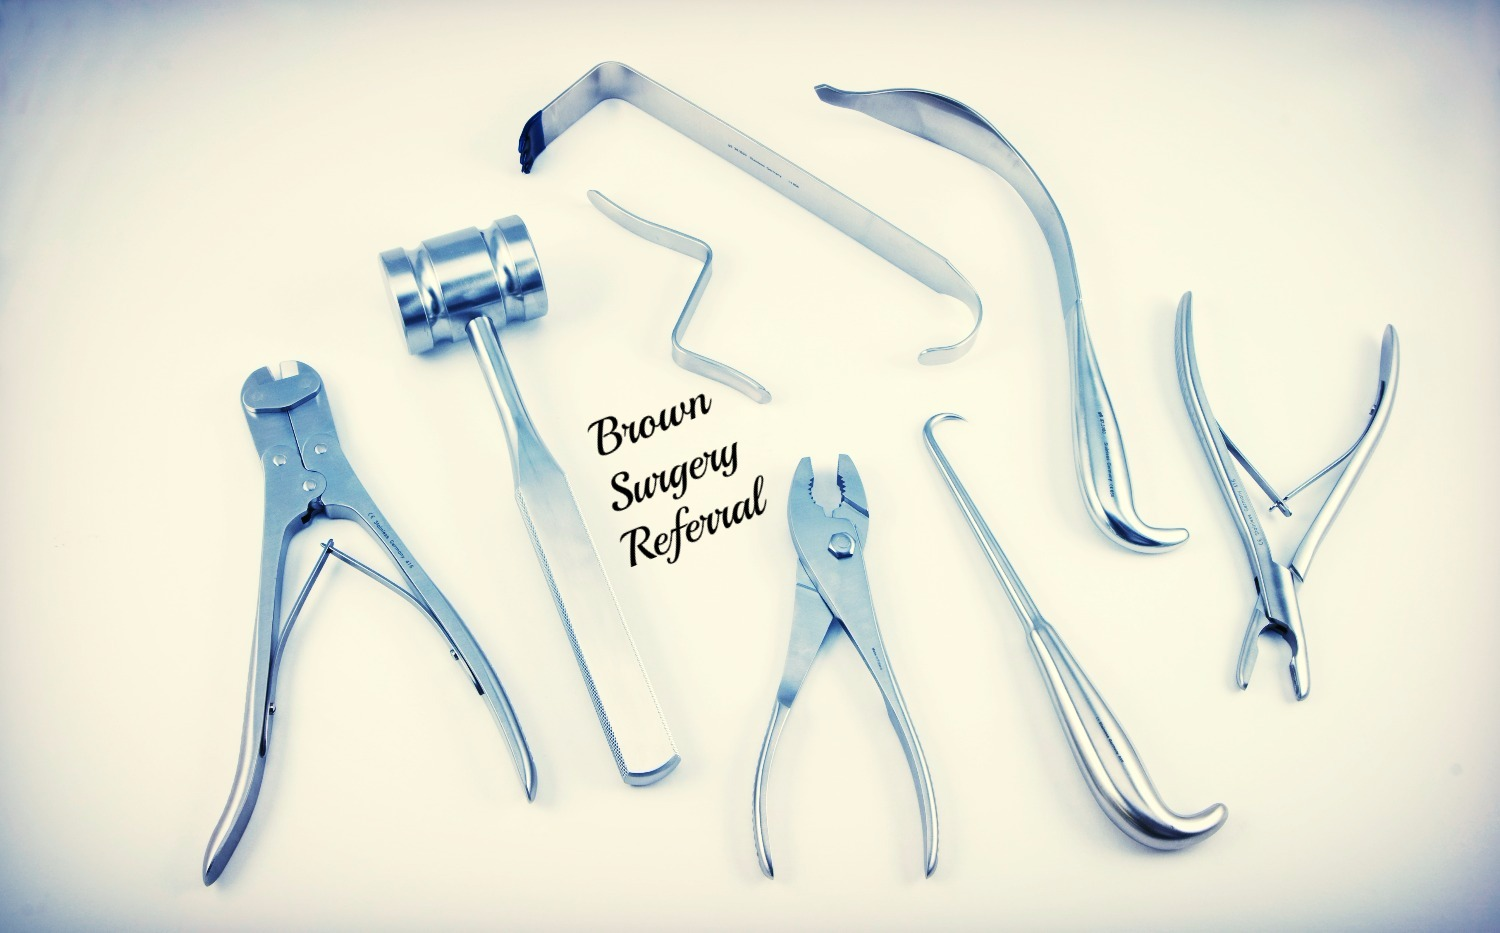 Brown surgery referral